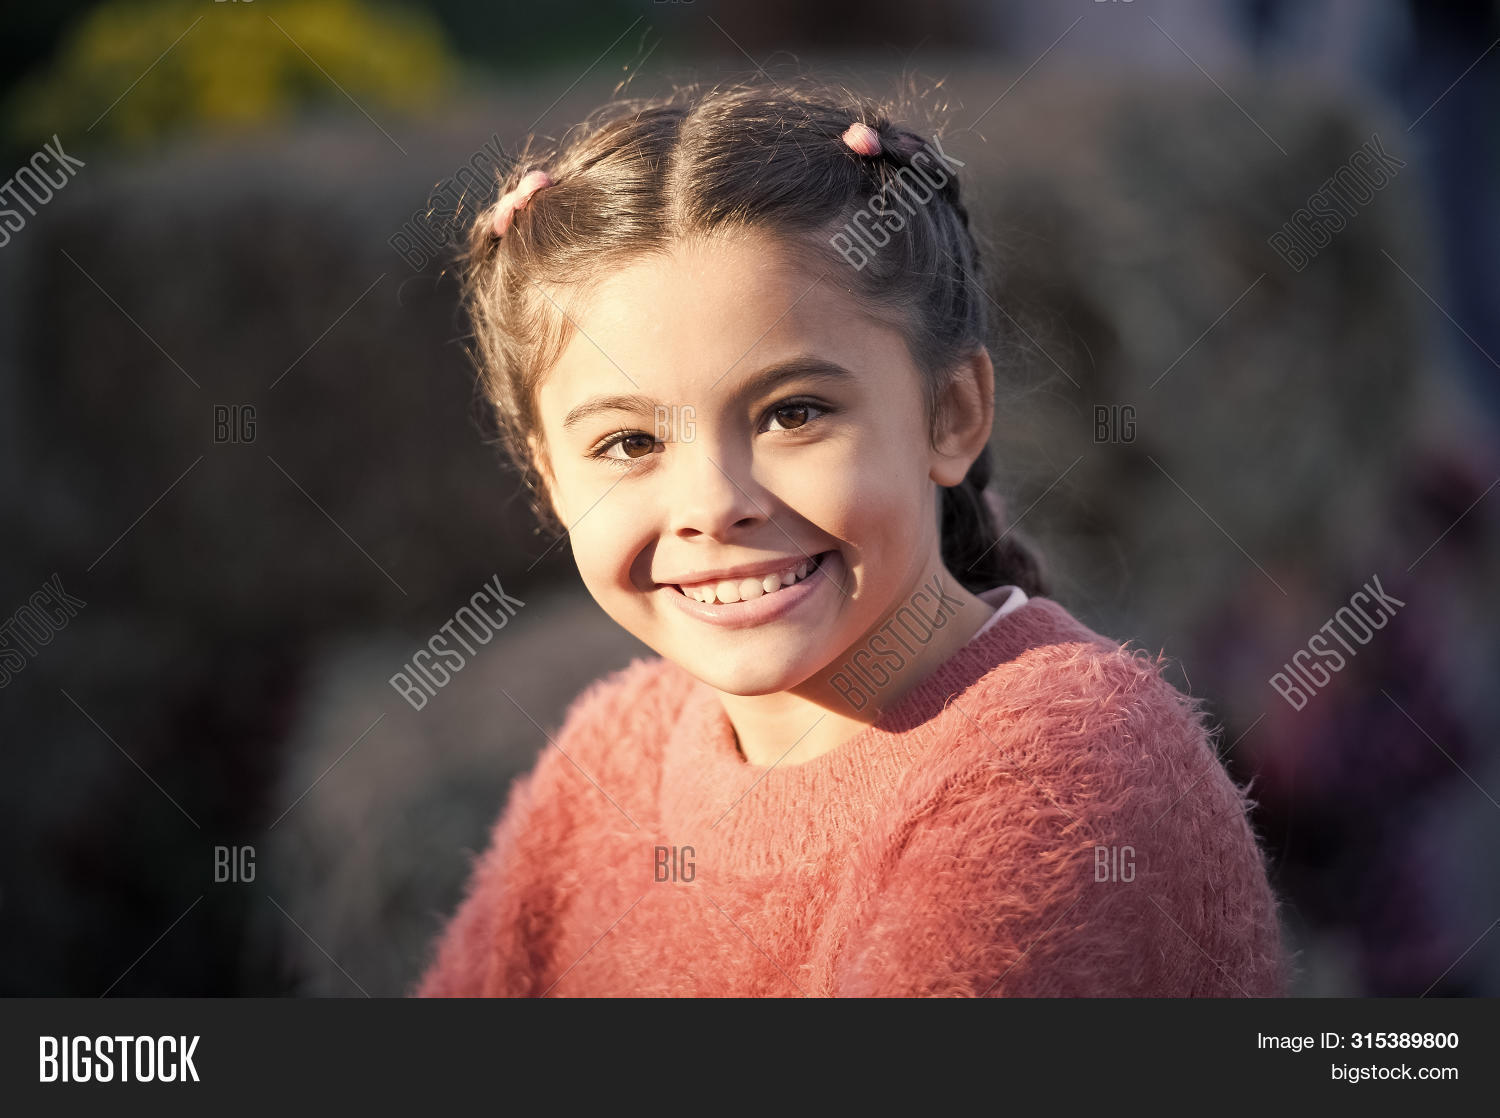 background,beautiful,beauty,braids,bright,care,childhood,concept,cute,day,emotions,enjoying,face,finally,fun,garden,girl,happy,healthy,here,is,joy,leisure,lifestyle,light,moment,mood,nature,outdoors,park,pleasant,positive,relaxing,skin,smile,smiling,spring,sun,sunny,sunshine,to,up,warming,weather